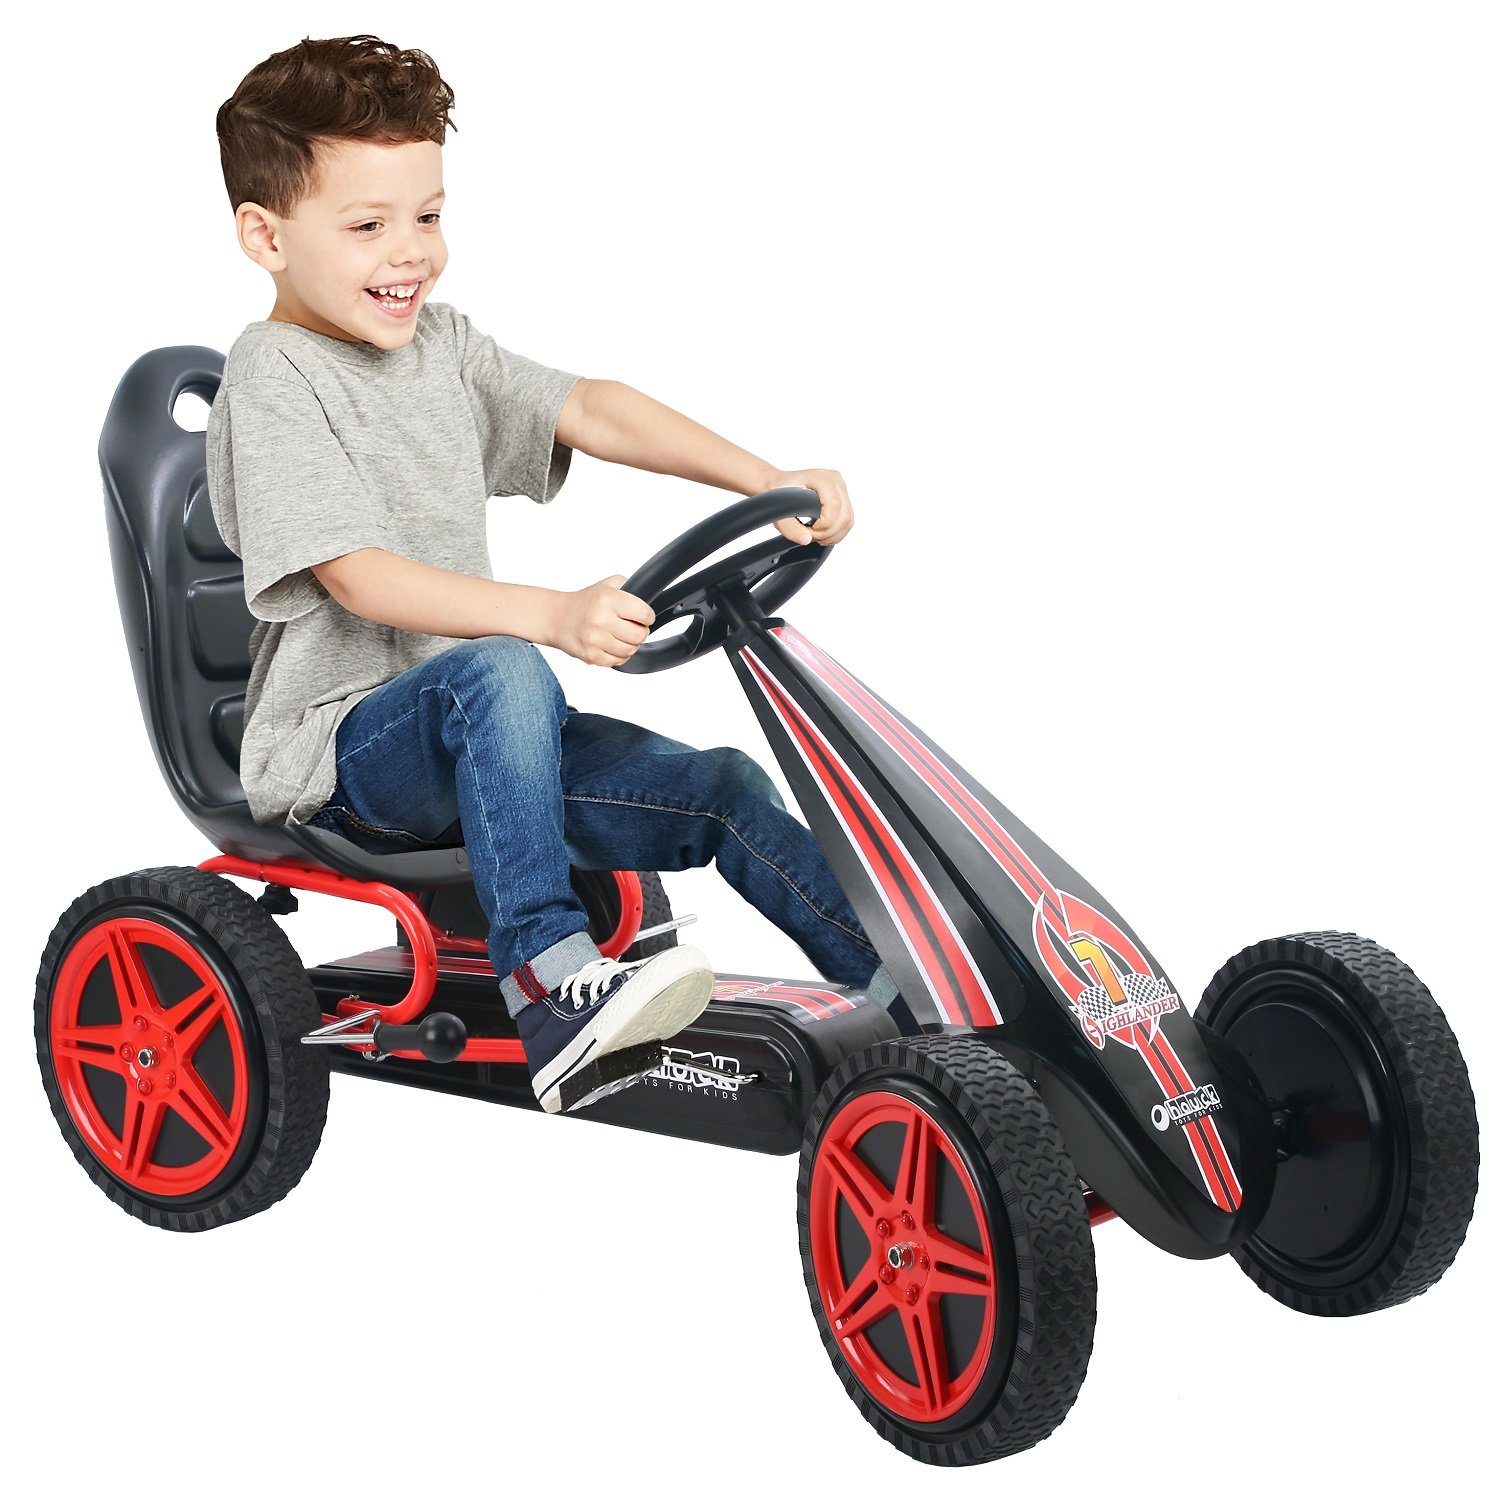 Amazon.com: Hauck Highlander Pedal Go Kart Ride On, Red/Black: Toys ...